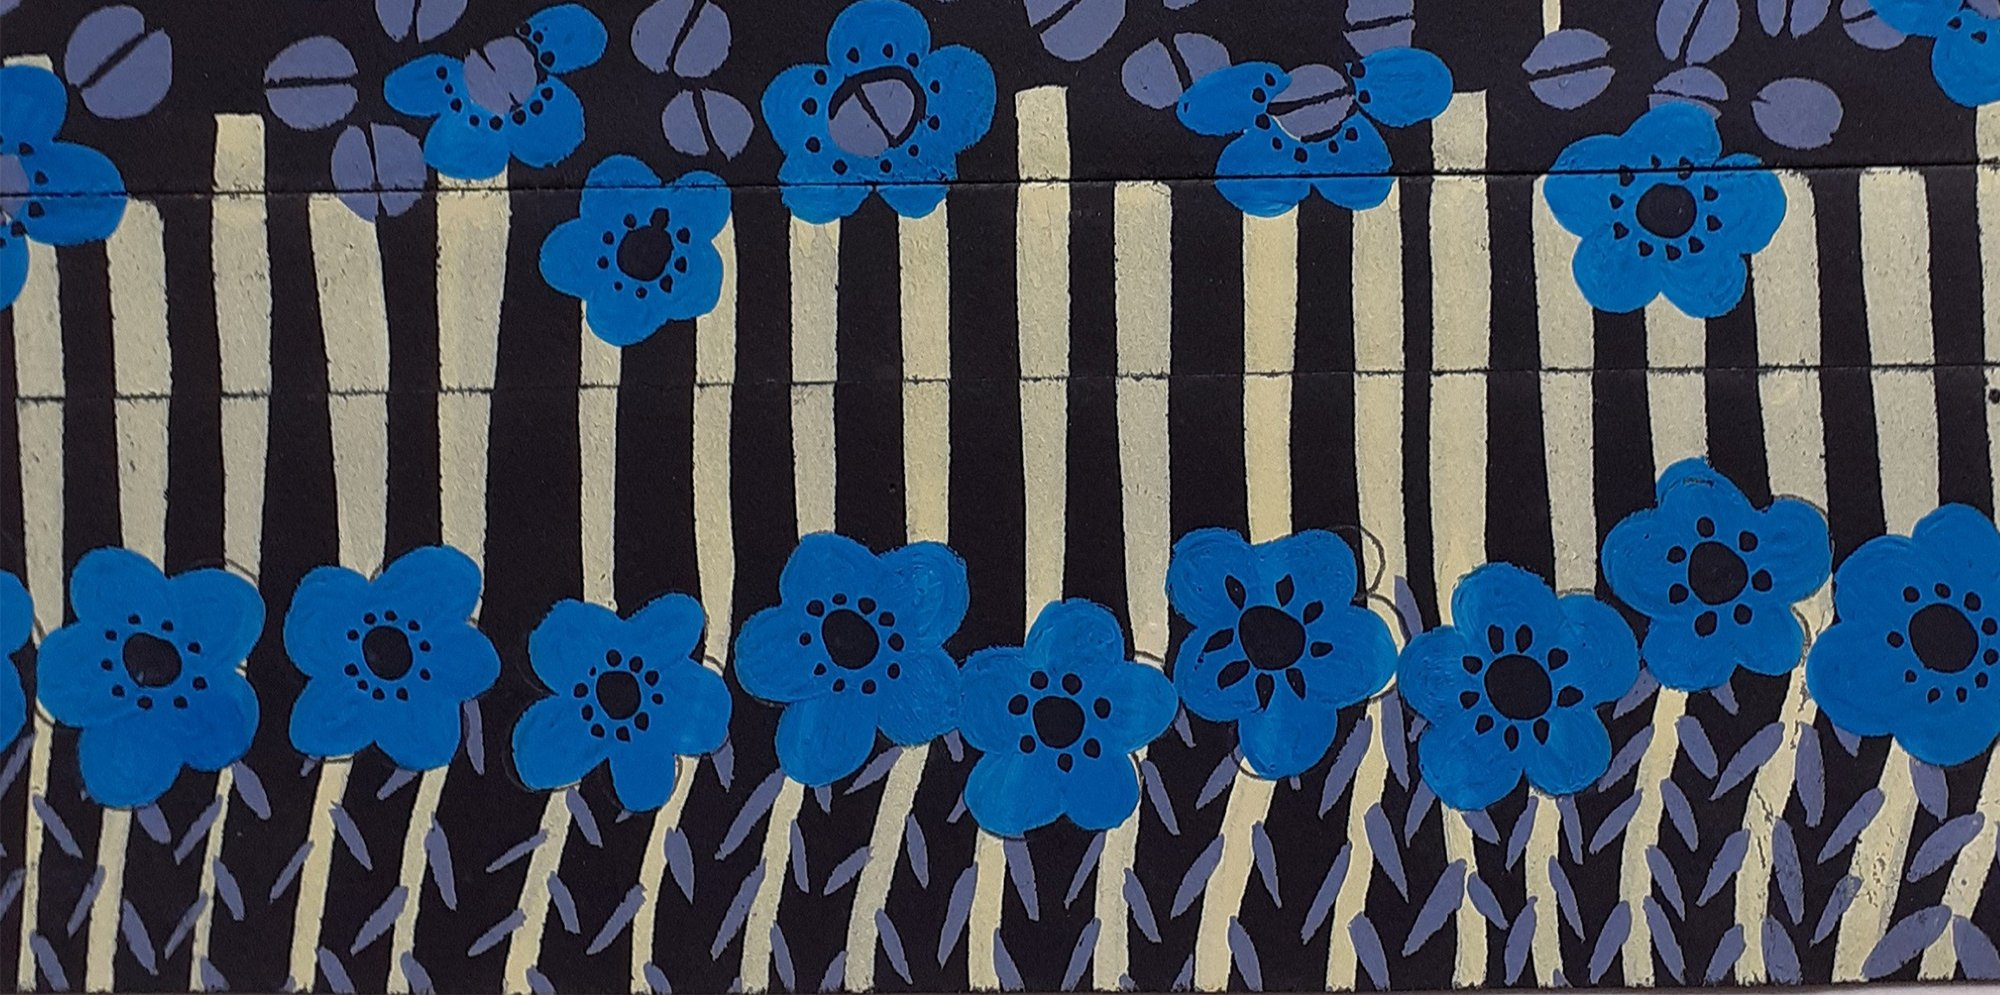 A pattern made up of blue and white flowers and white lines against a black background